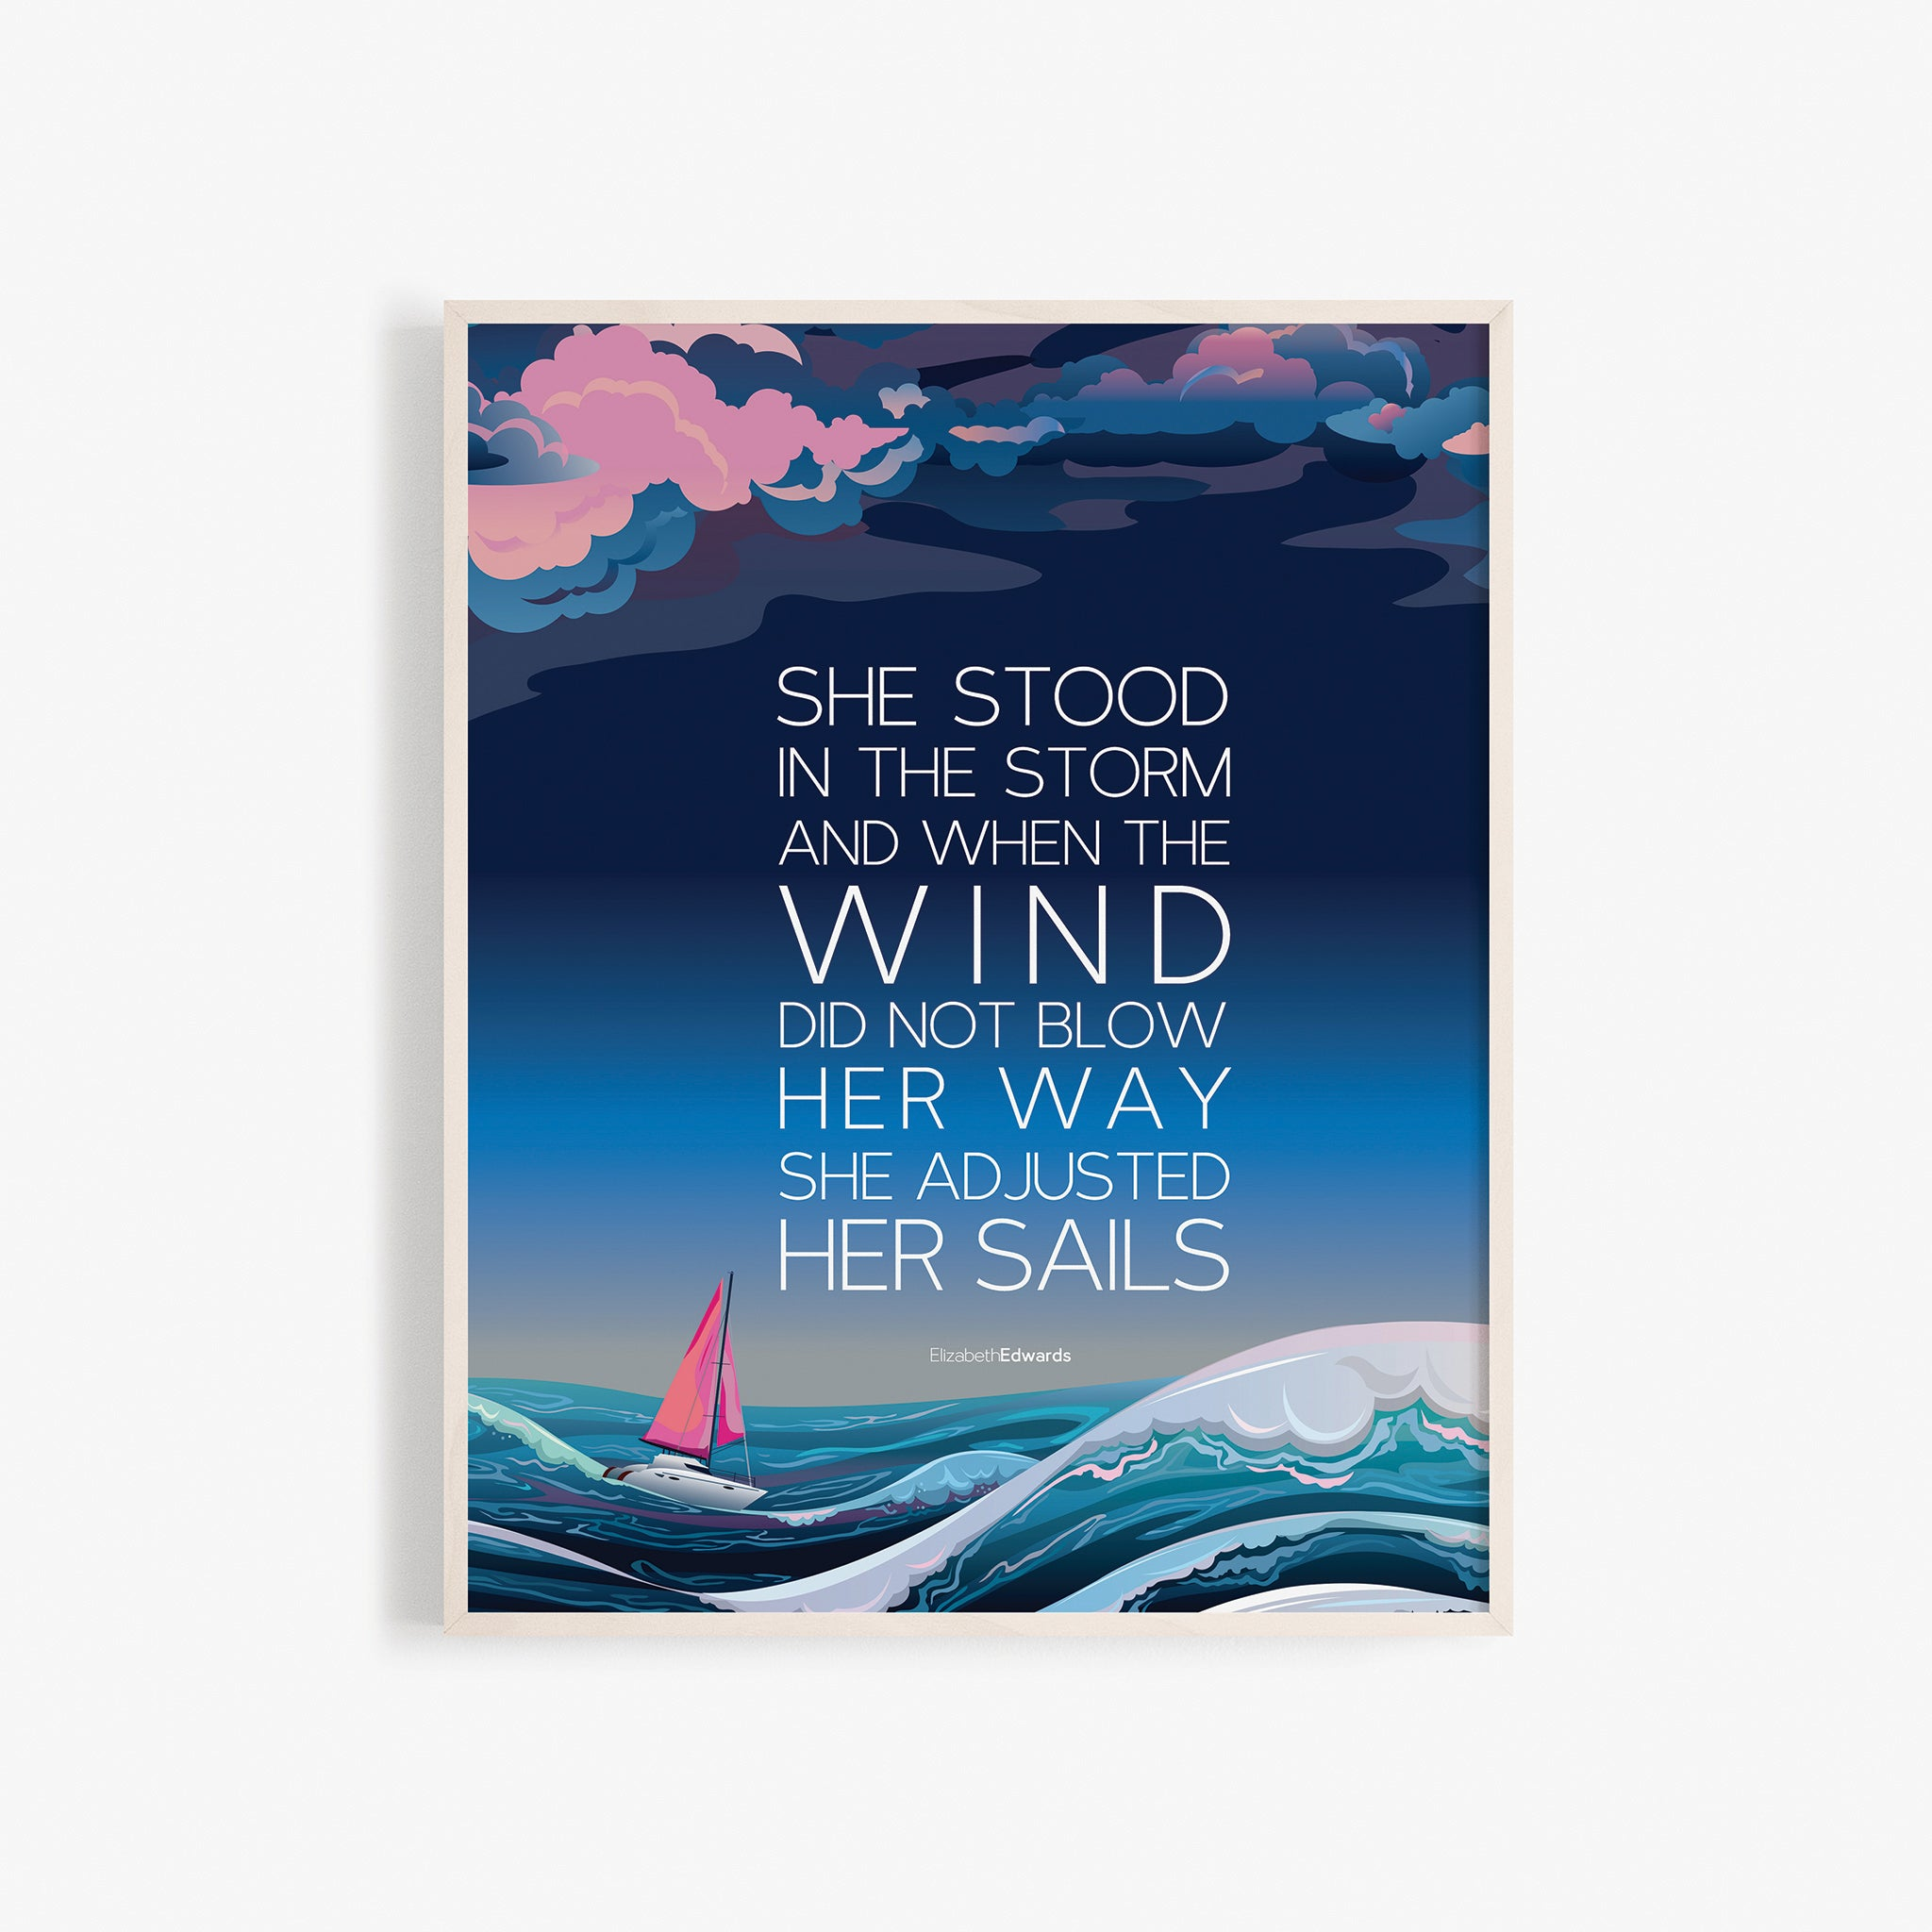 She stood in the storm and when the wind did not blow her away, she adjusted her sails, Inspirational art poster